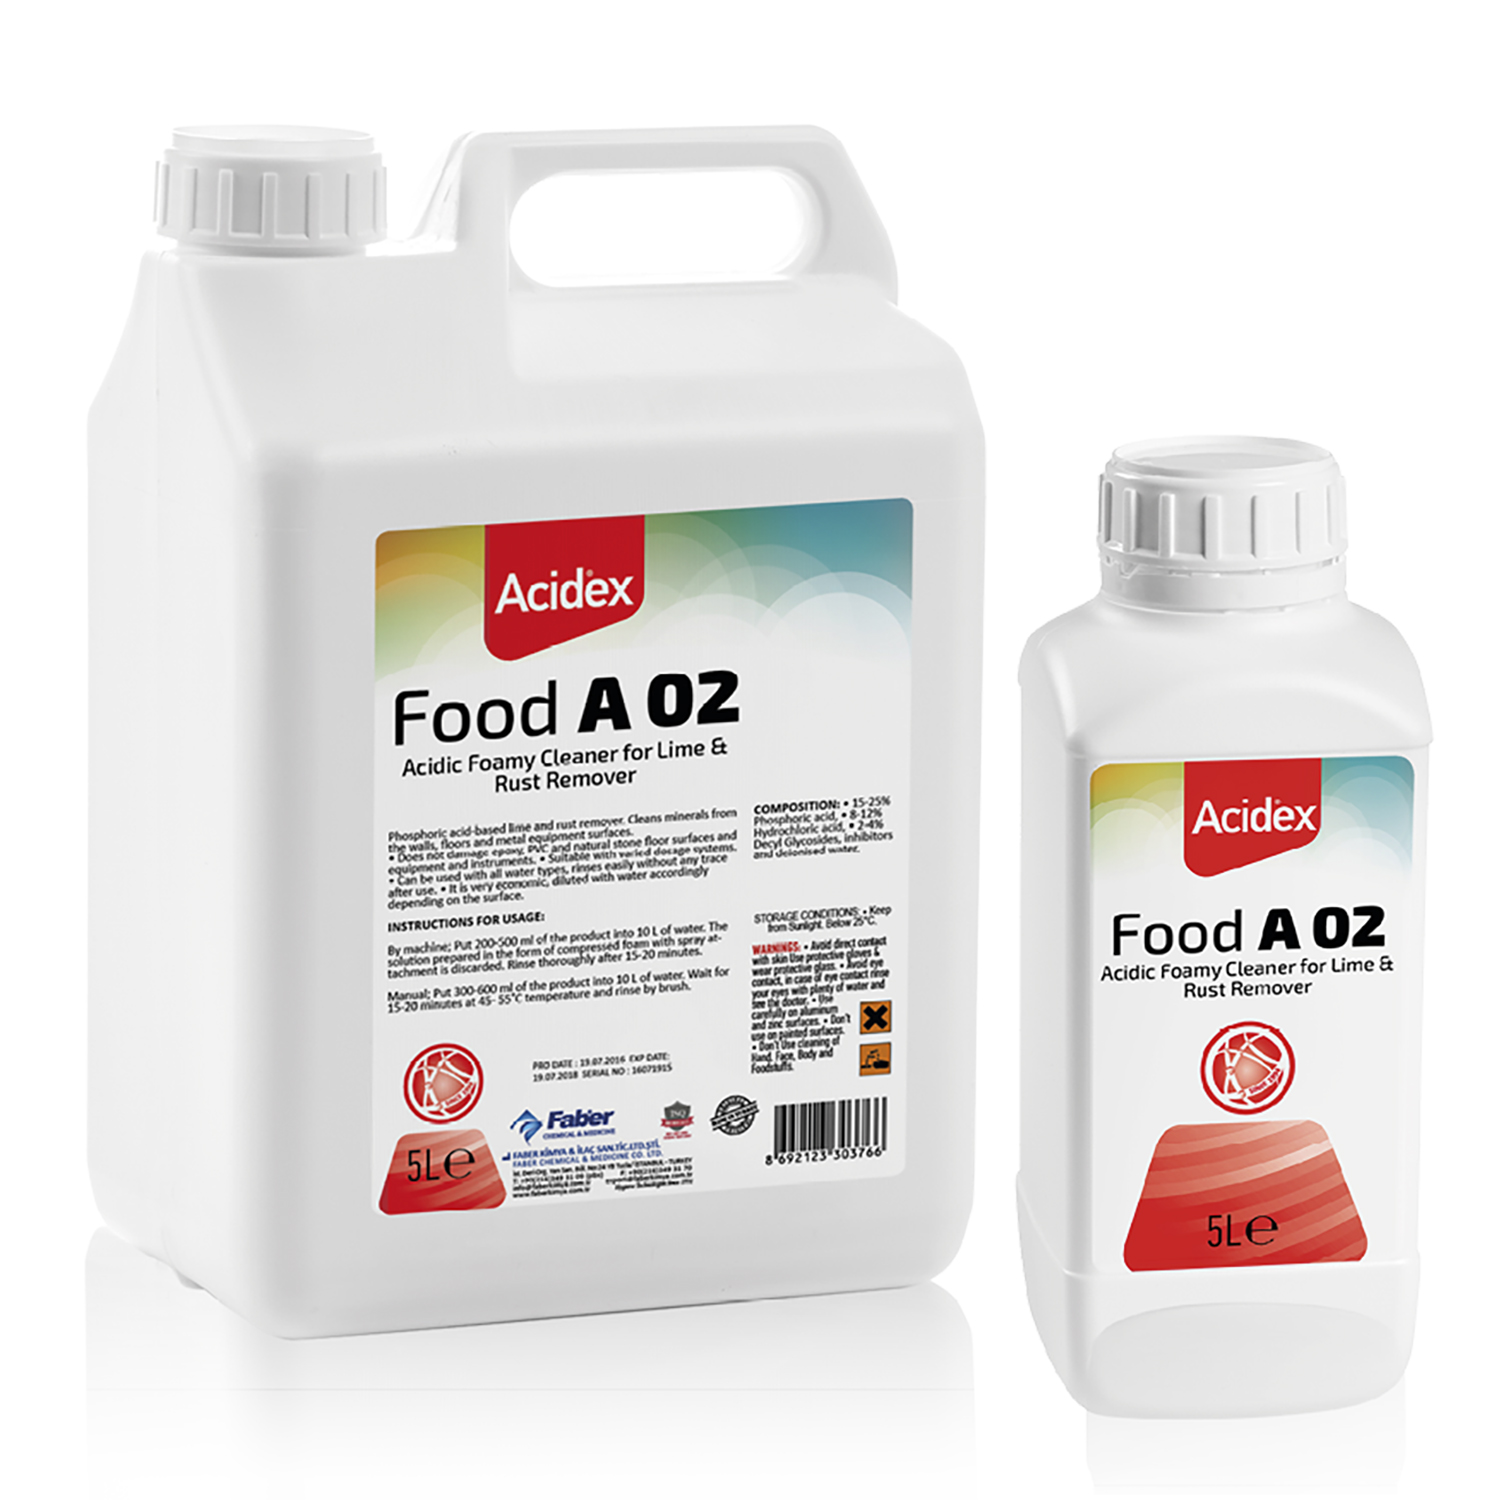 Acidex Food A 02